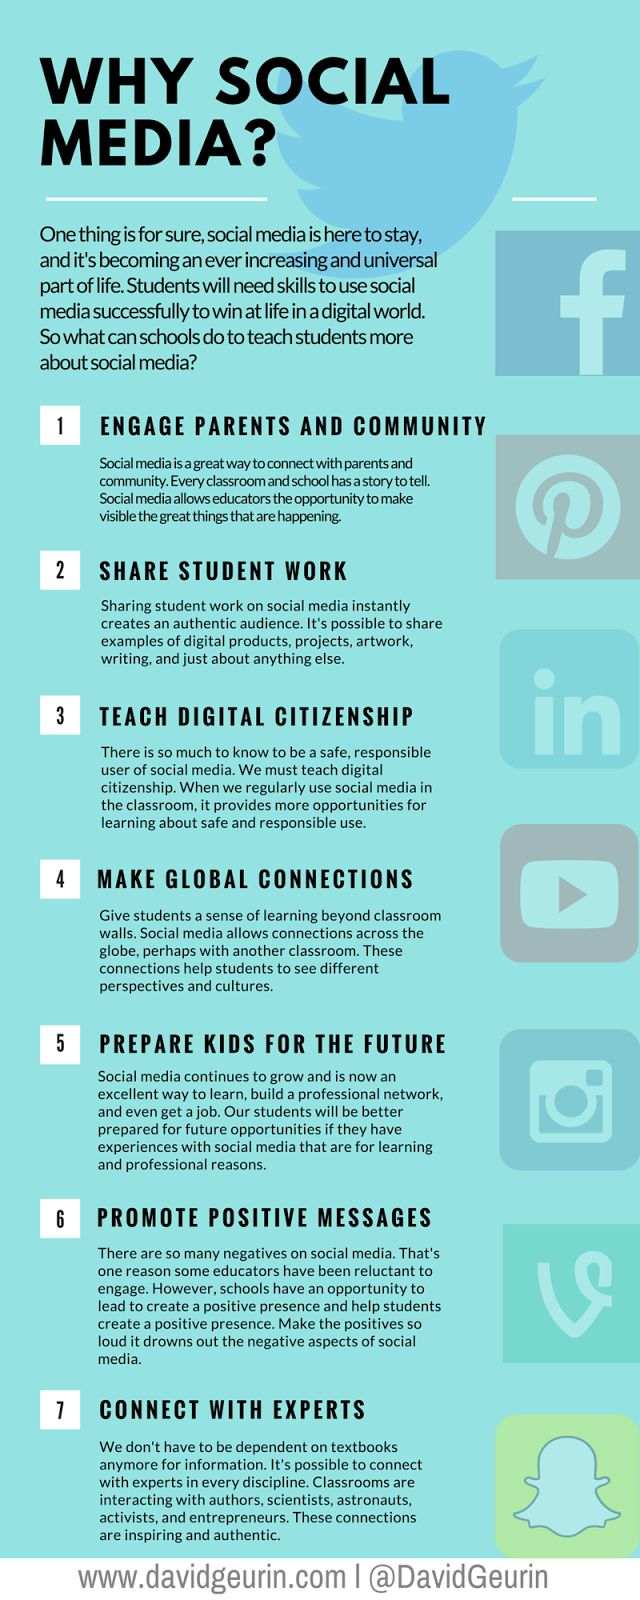 Pocket: 7 Reasons To Use Social Media In Your School (INFOGRAPHIC)